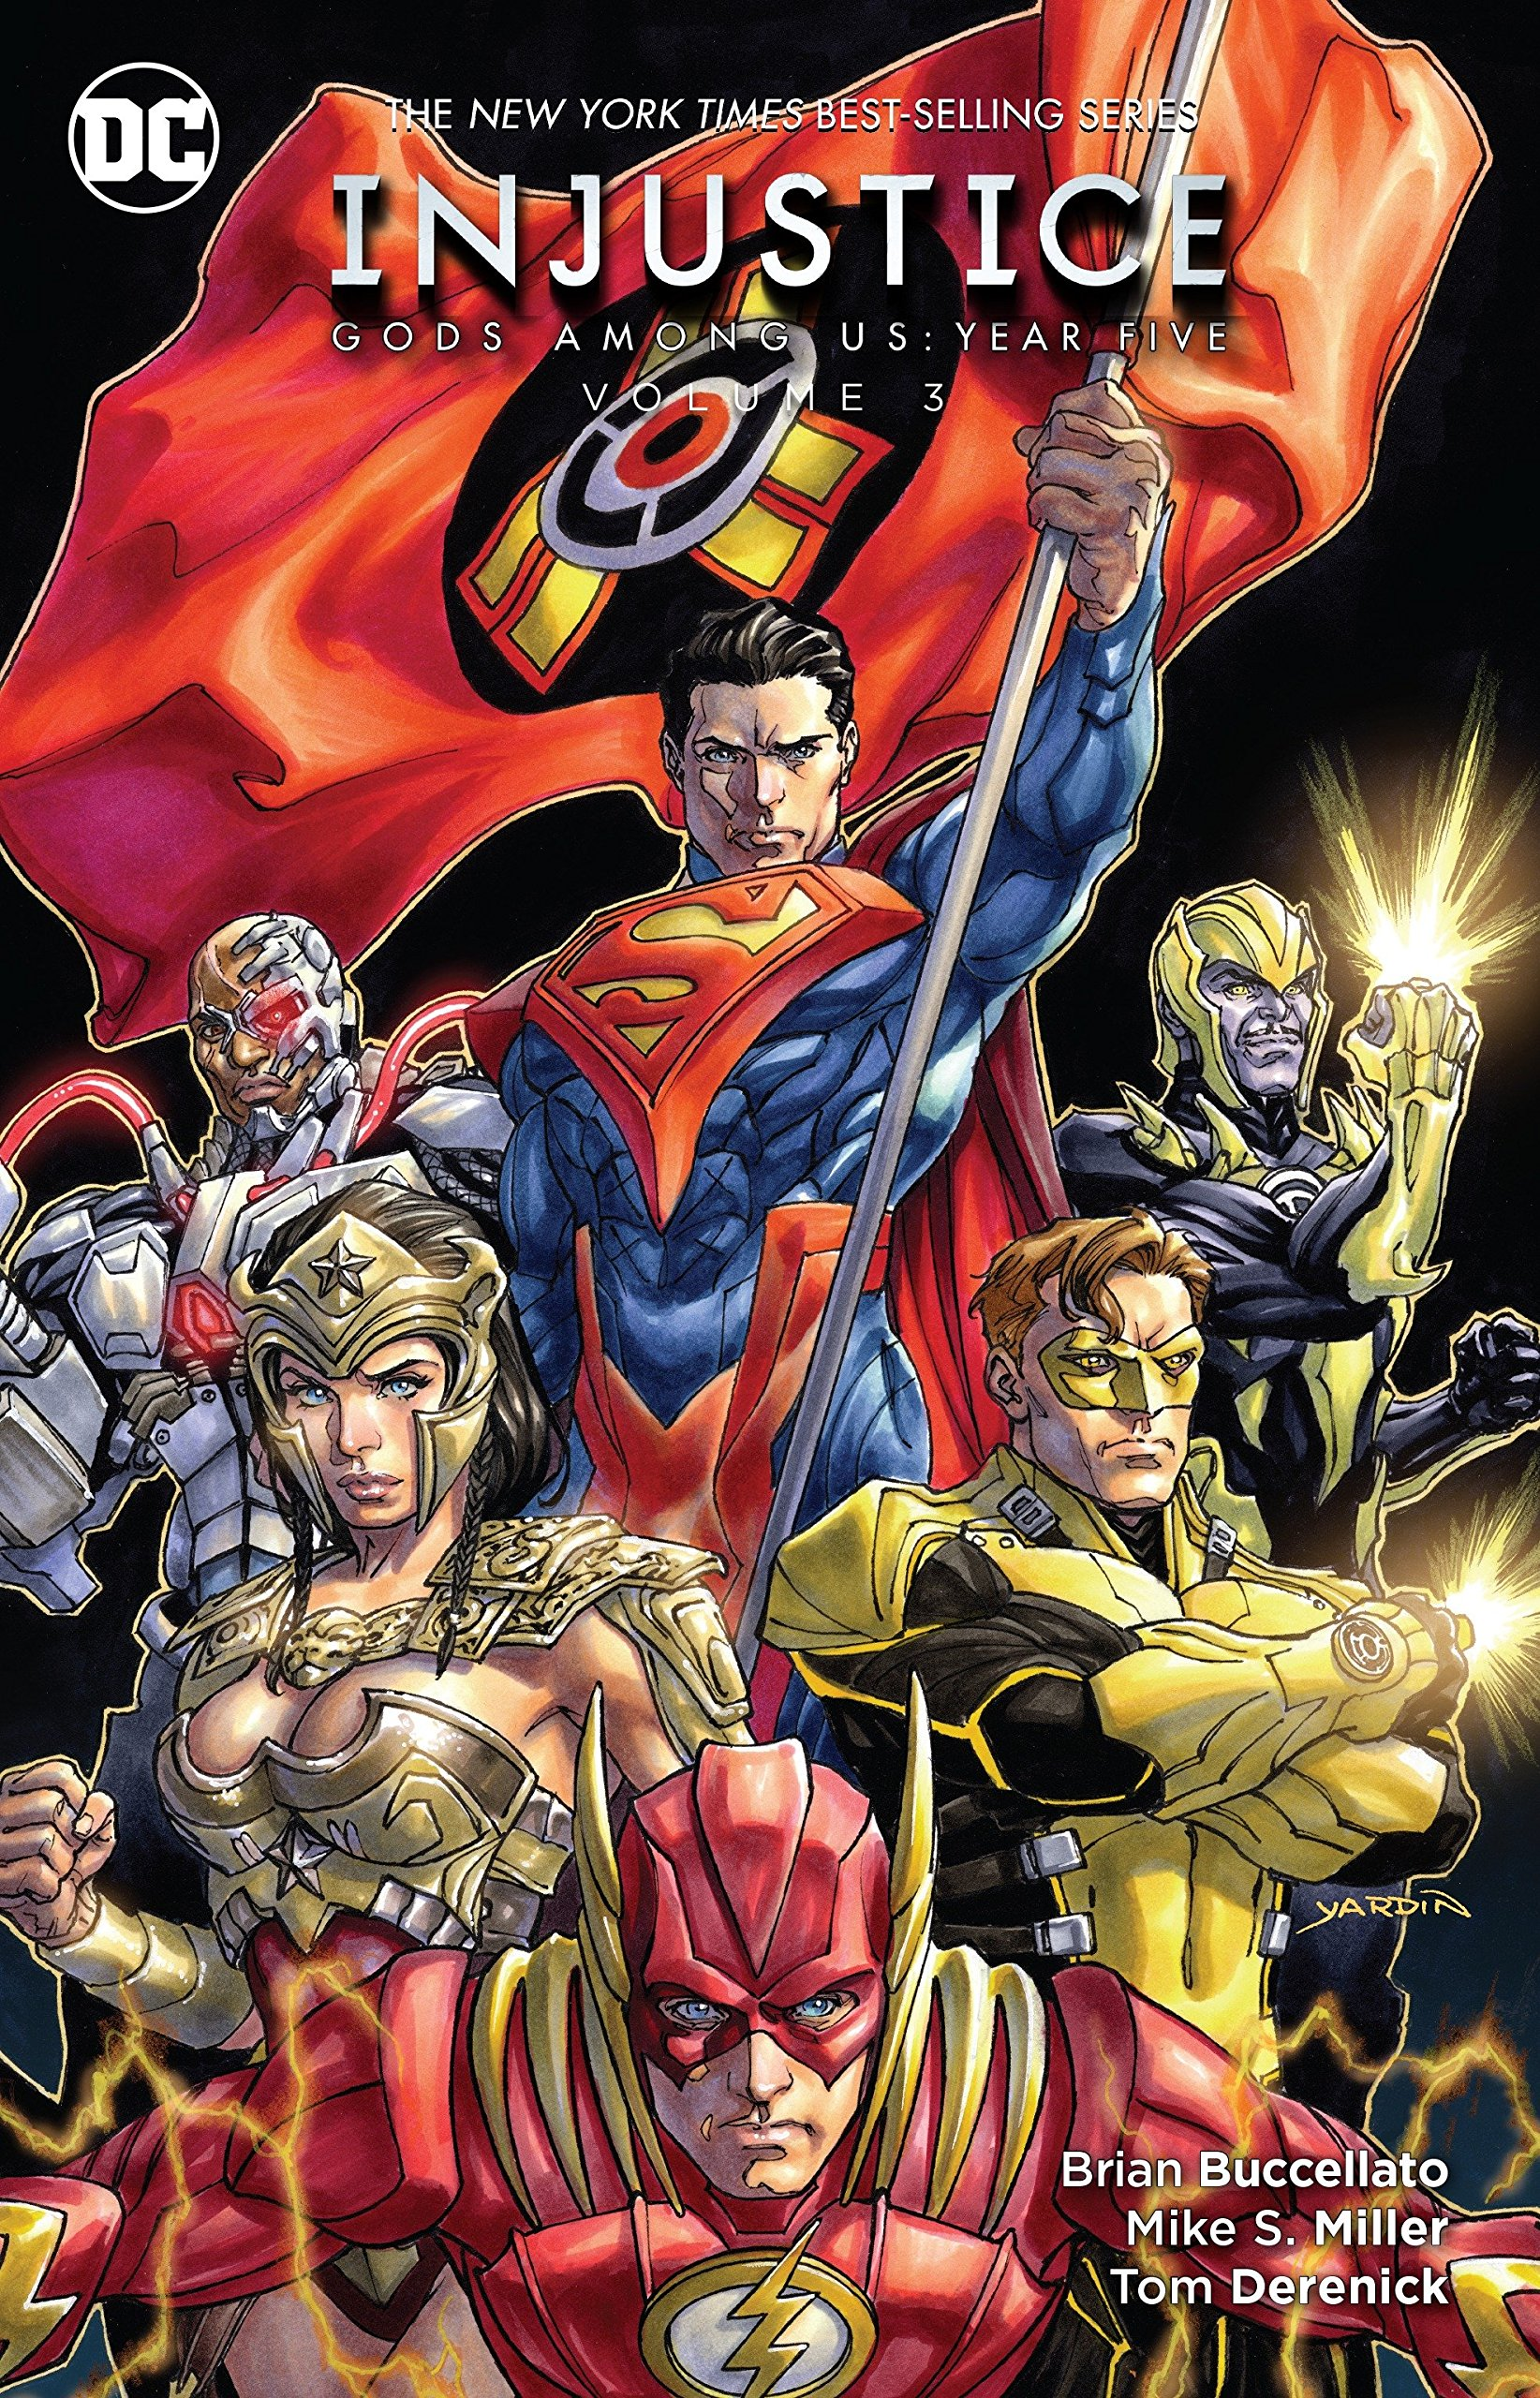 Injustice: Gods Among Us: Year Five Vol. 3 by DC Comics